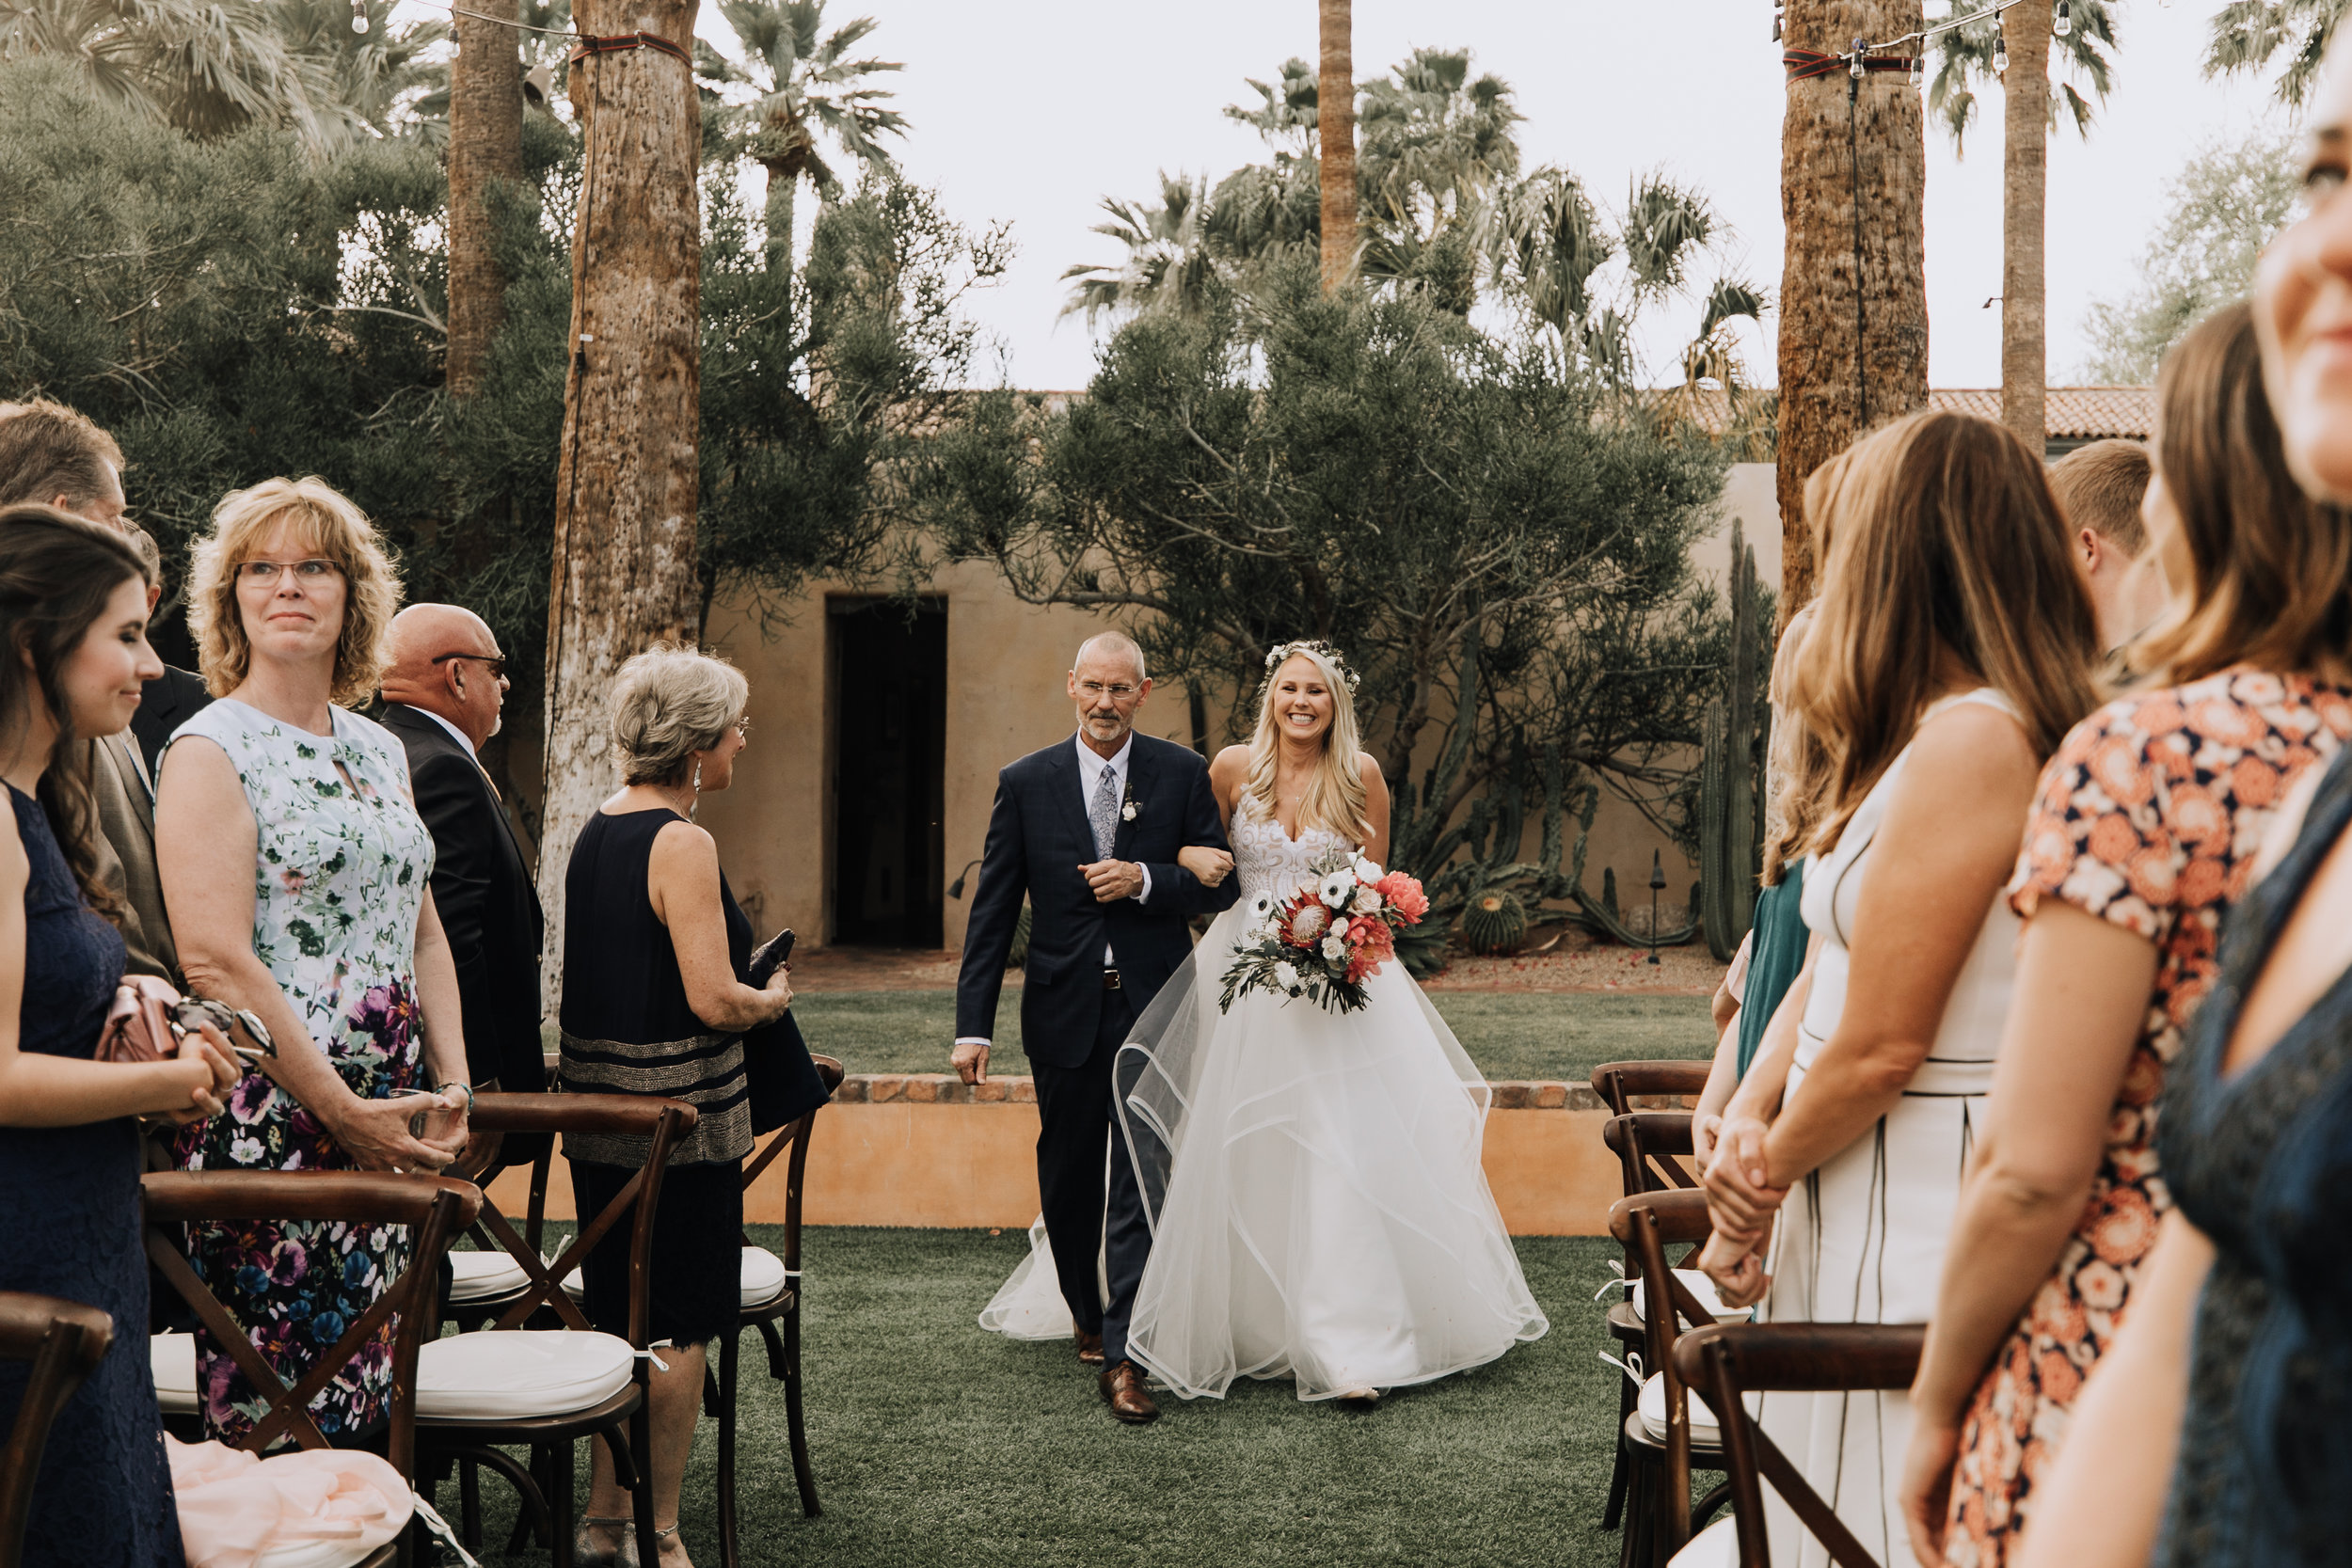 Bride with Peony Bouquet at Arizona Royal Palms Wedding